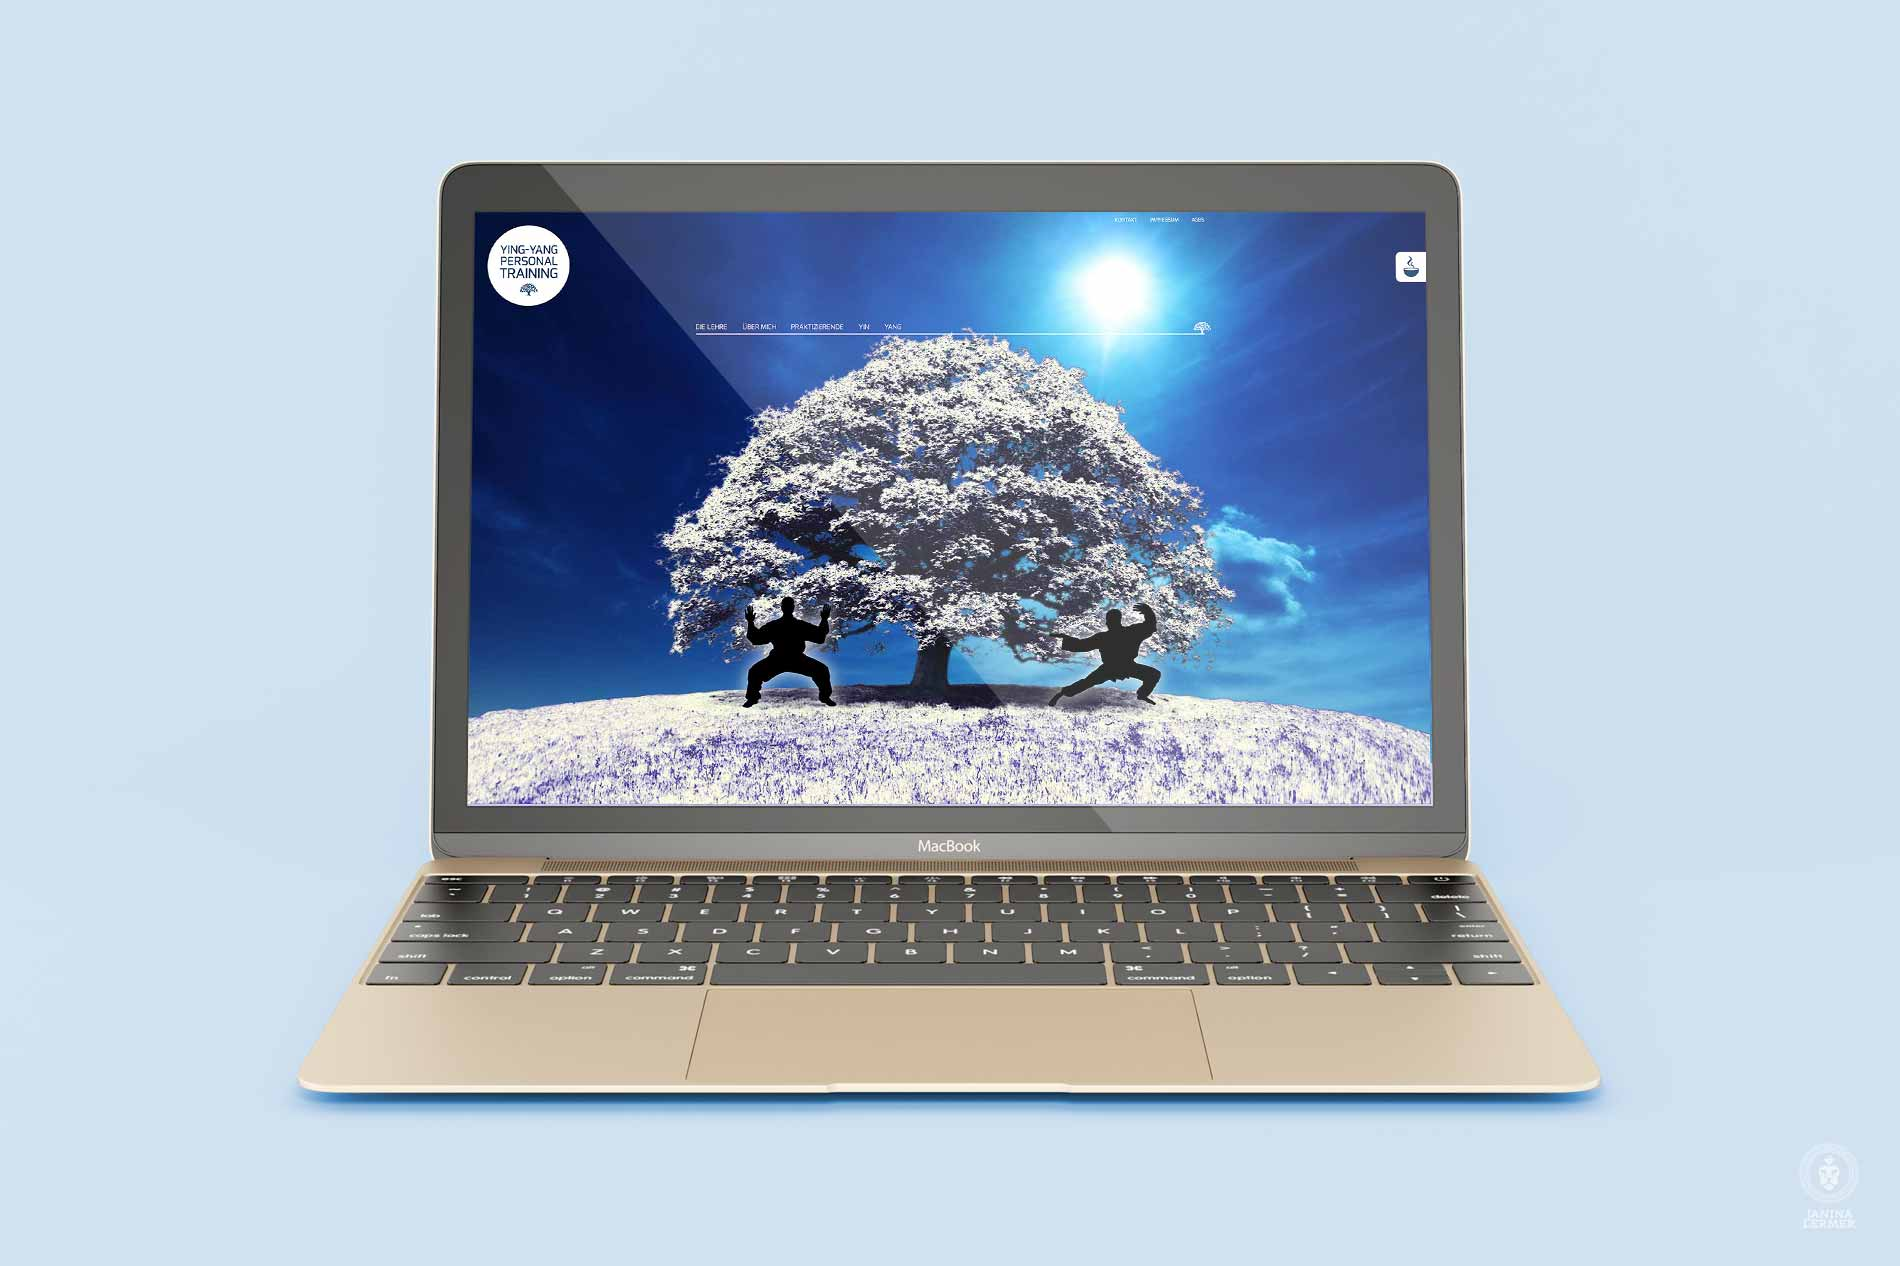 Webseitenkonzept-Webseitengestaltung-Webdesign-Yin-Yang-PersonalTrainer-Ulrich-Lampert-Laptop-Winter